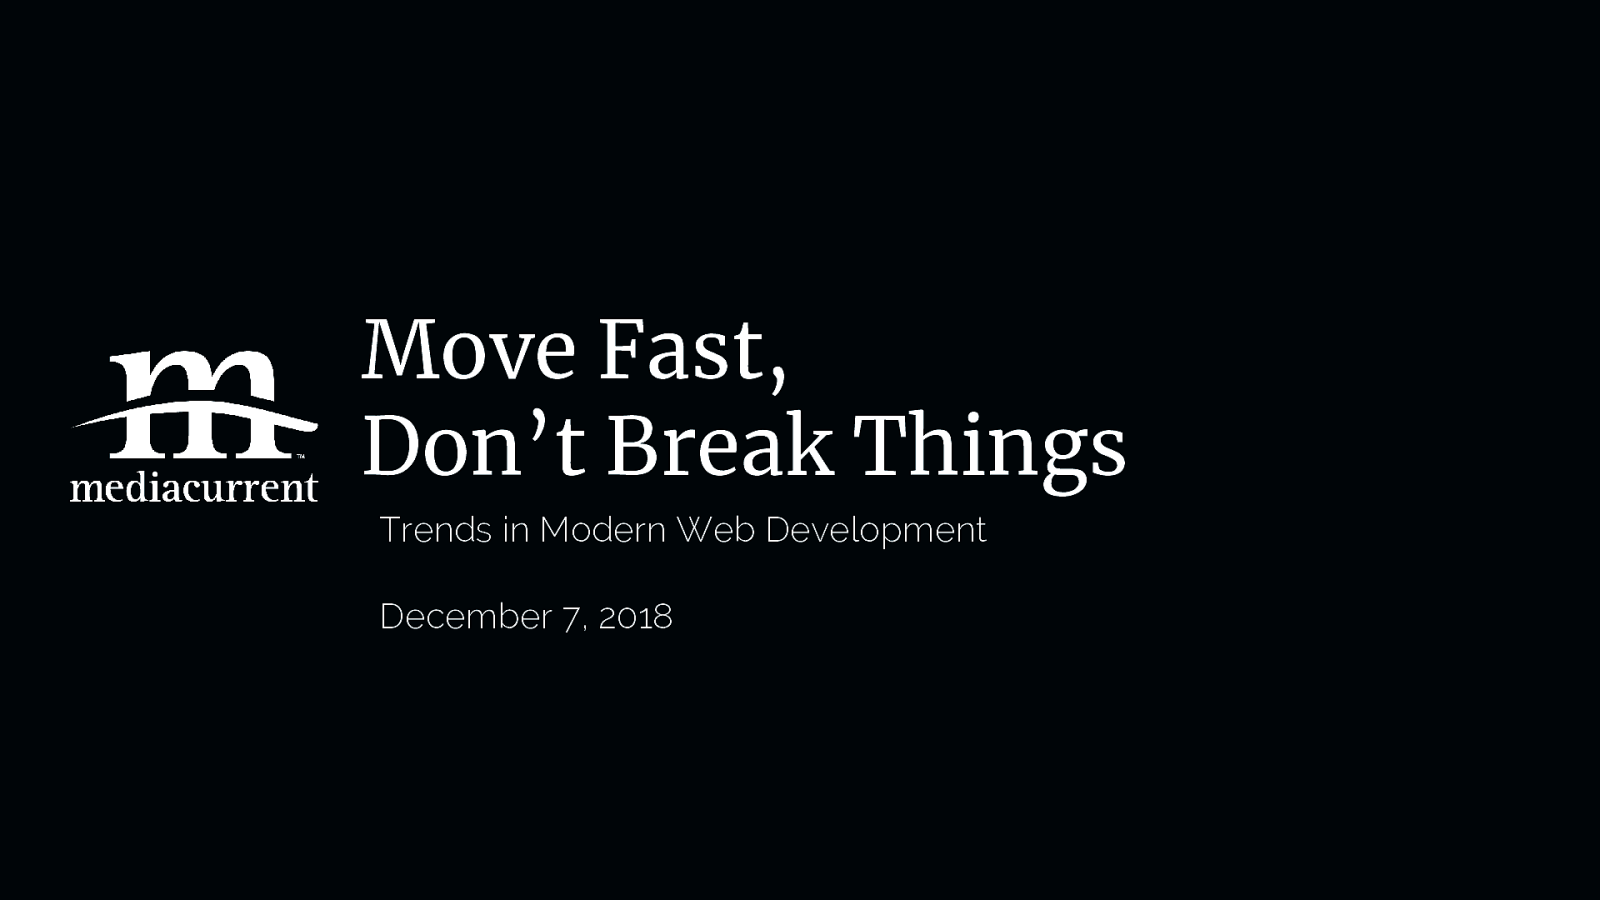 Move Fast, Don't Break Things: Trends in Modern Web Development